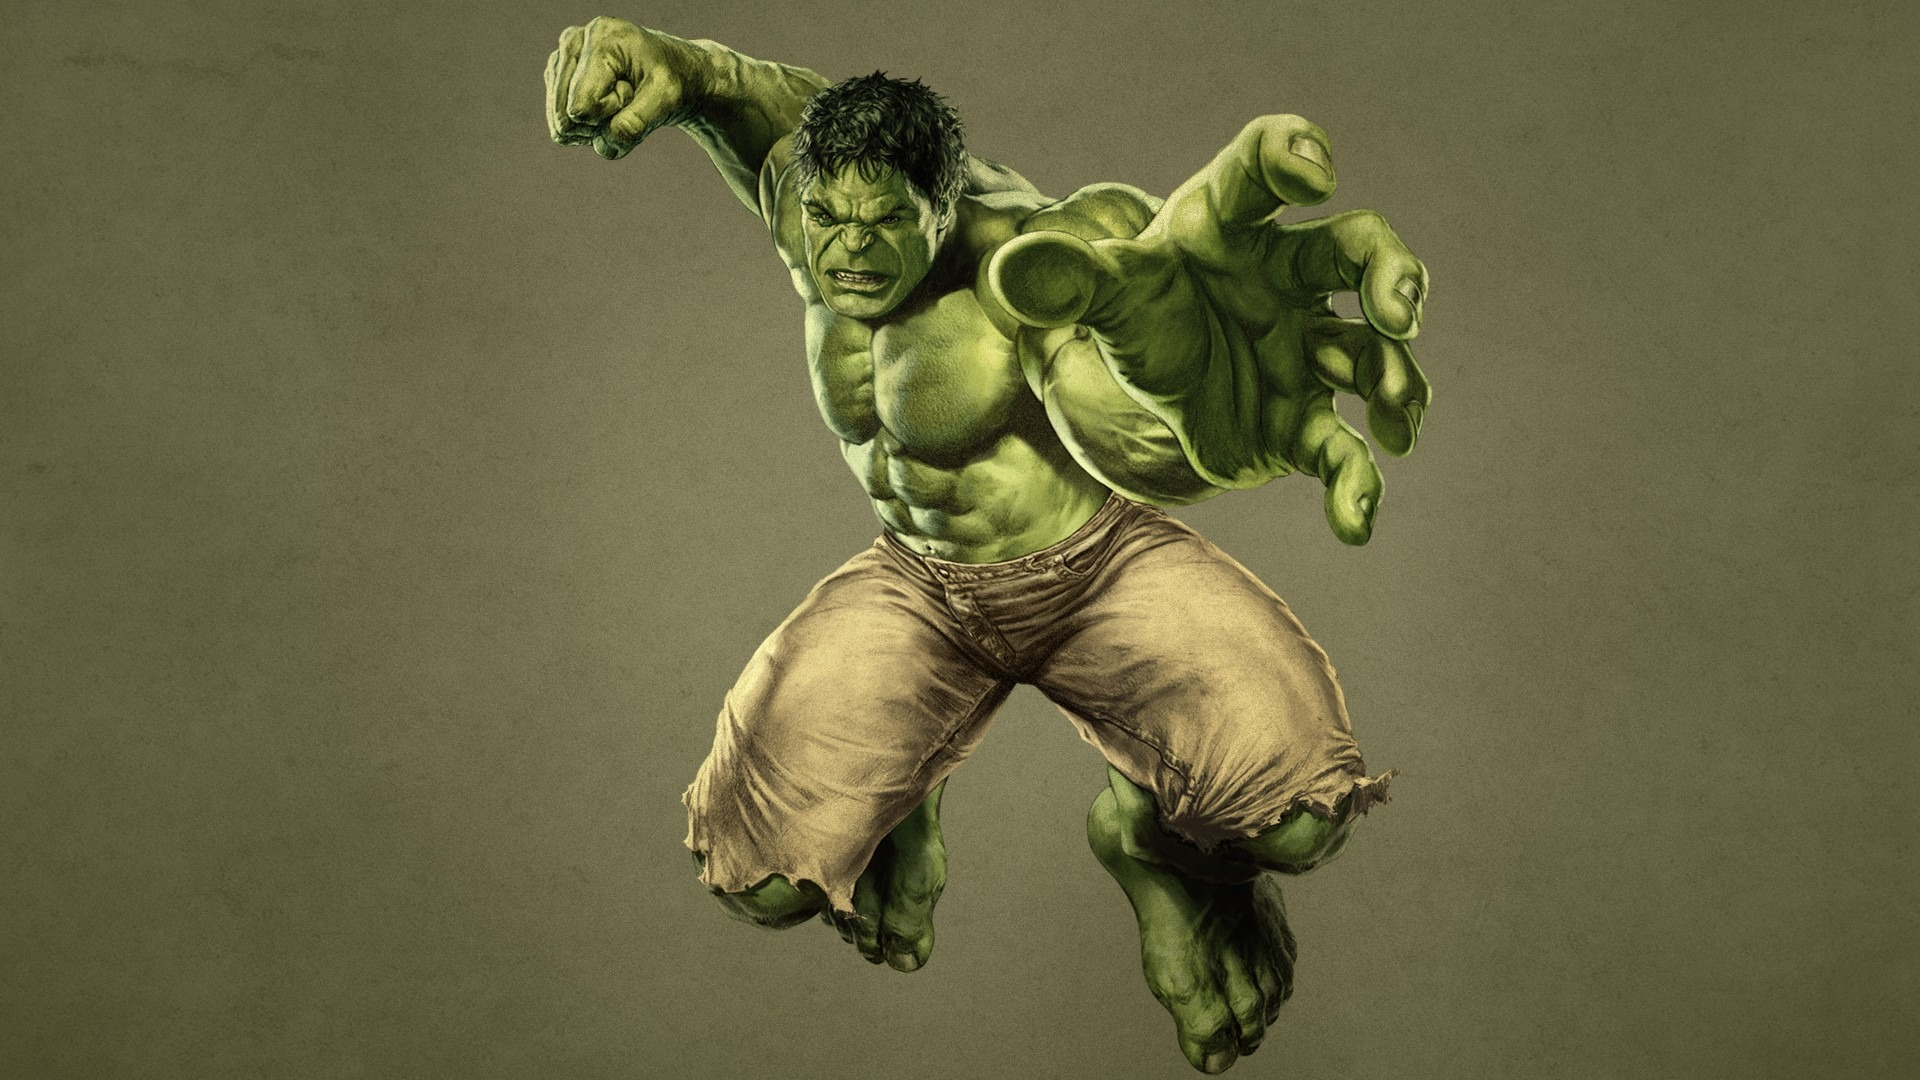 Hulk Hd Wallpapers For Desktop Download